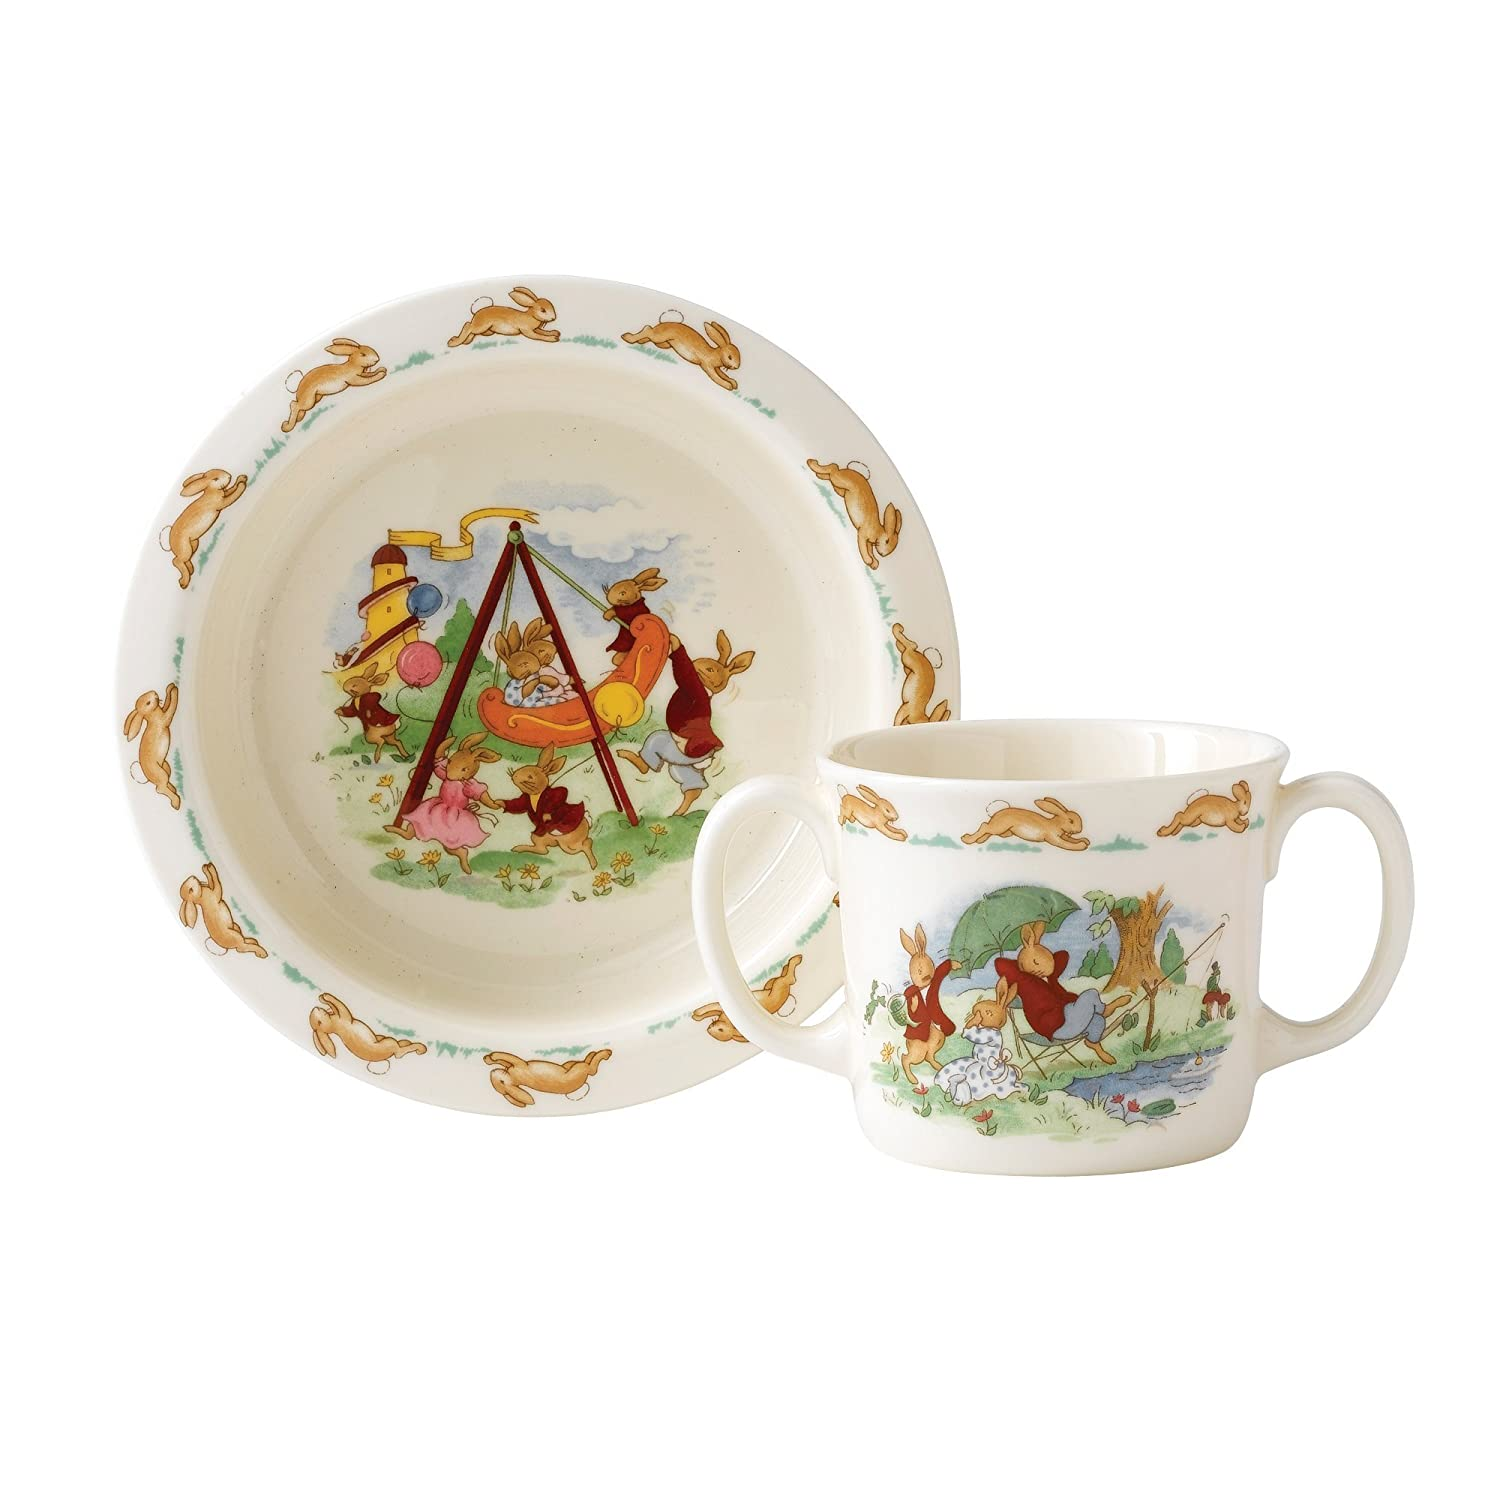 Amazon.com: Royal Doulton 07001800 Bunnykins Baby Dinnerware Set, Assorted  Motifs: Kitchen U0026 Dining